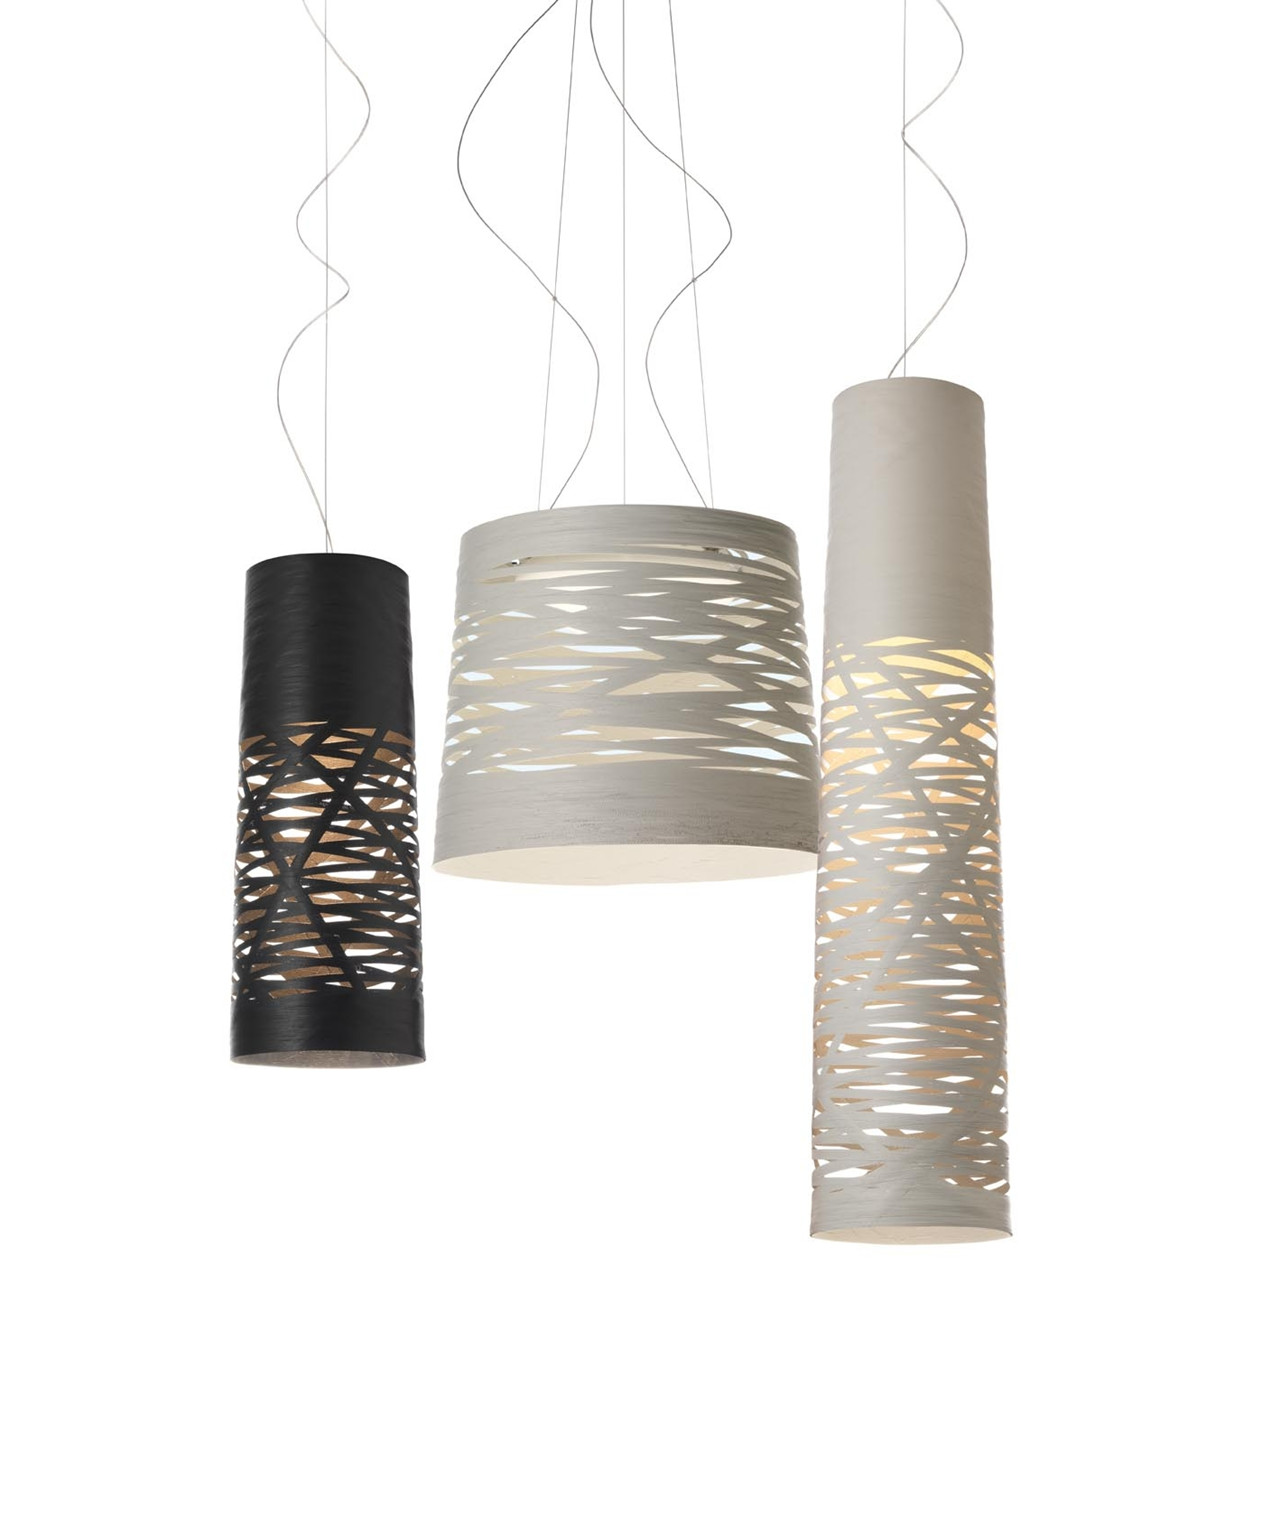 Tress Pendel Medium Sort 2m - Foscarini